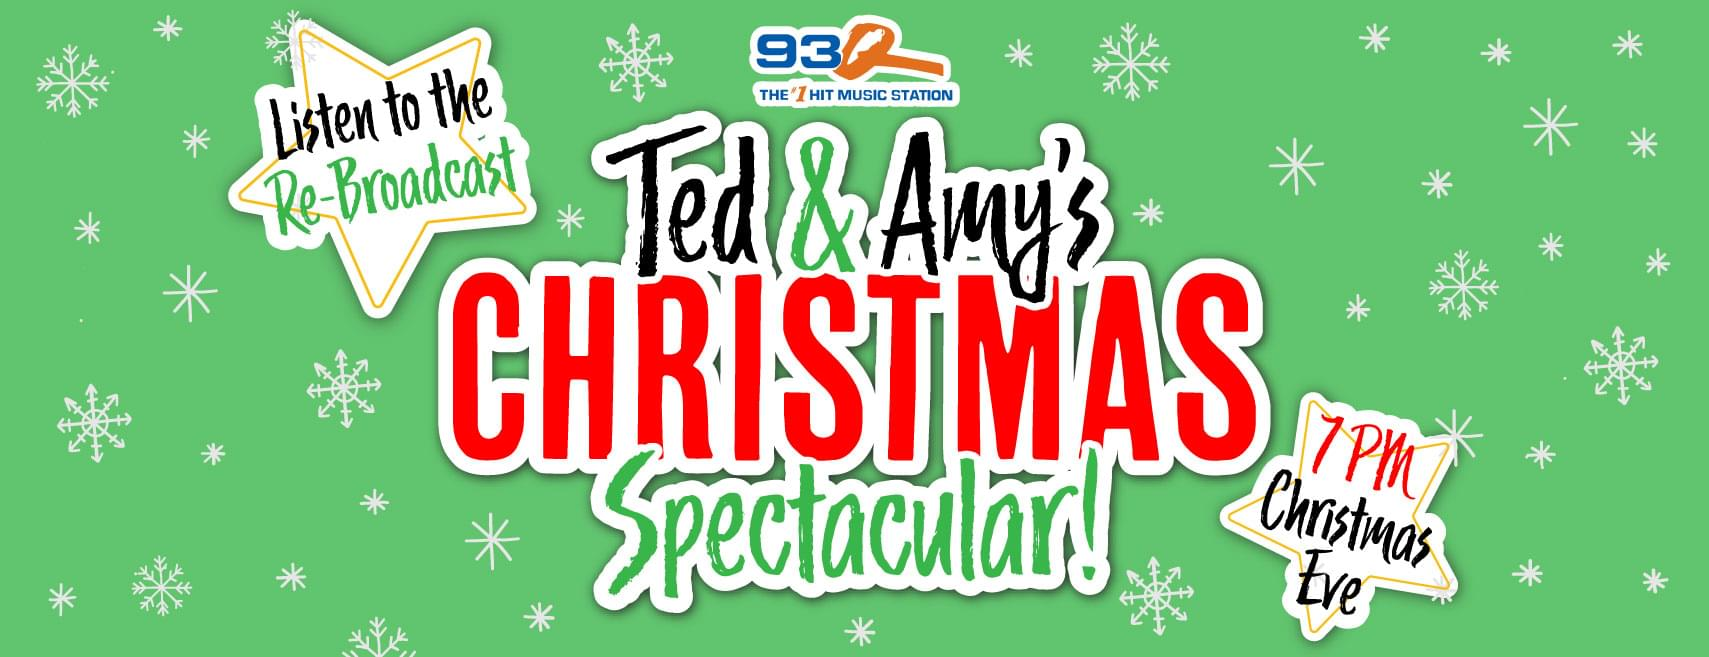 [photo gallery] 2018 Ted & Amy Christmas Spectacular